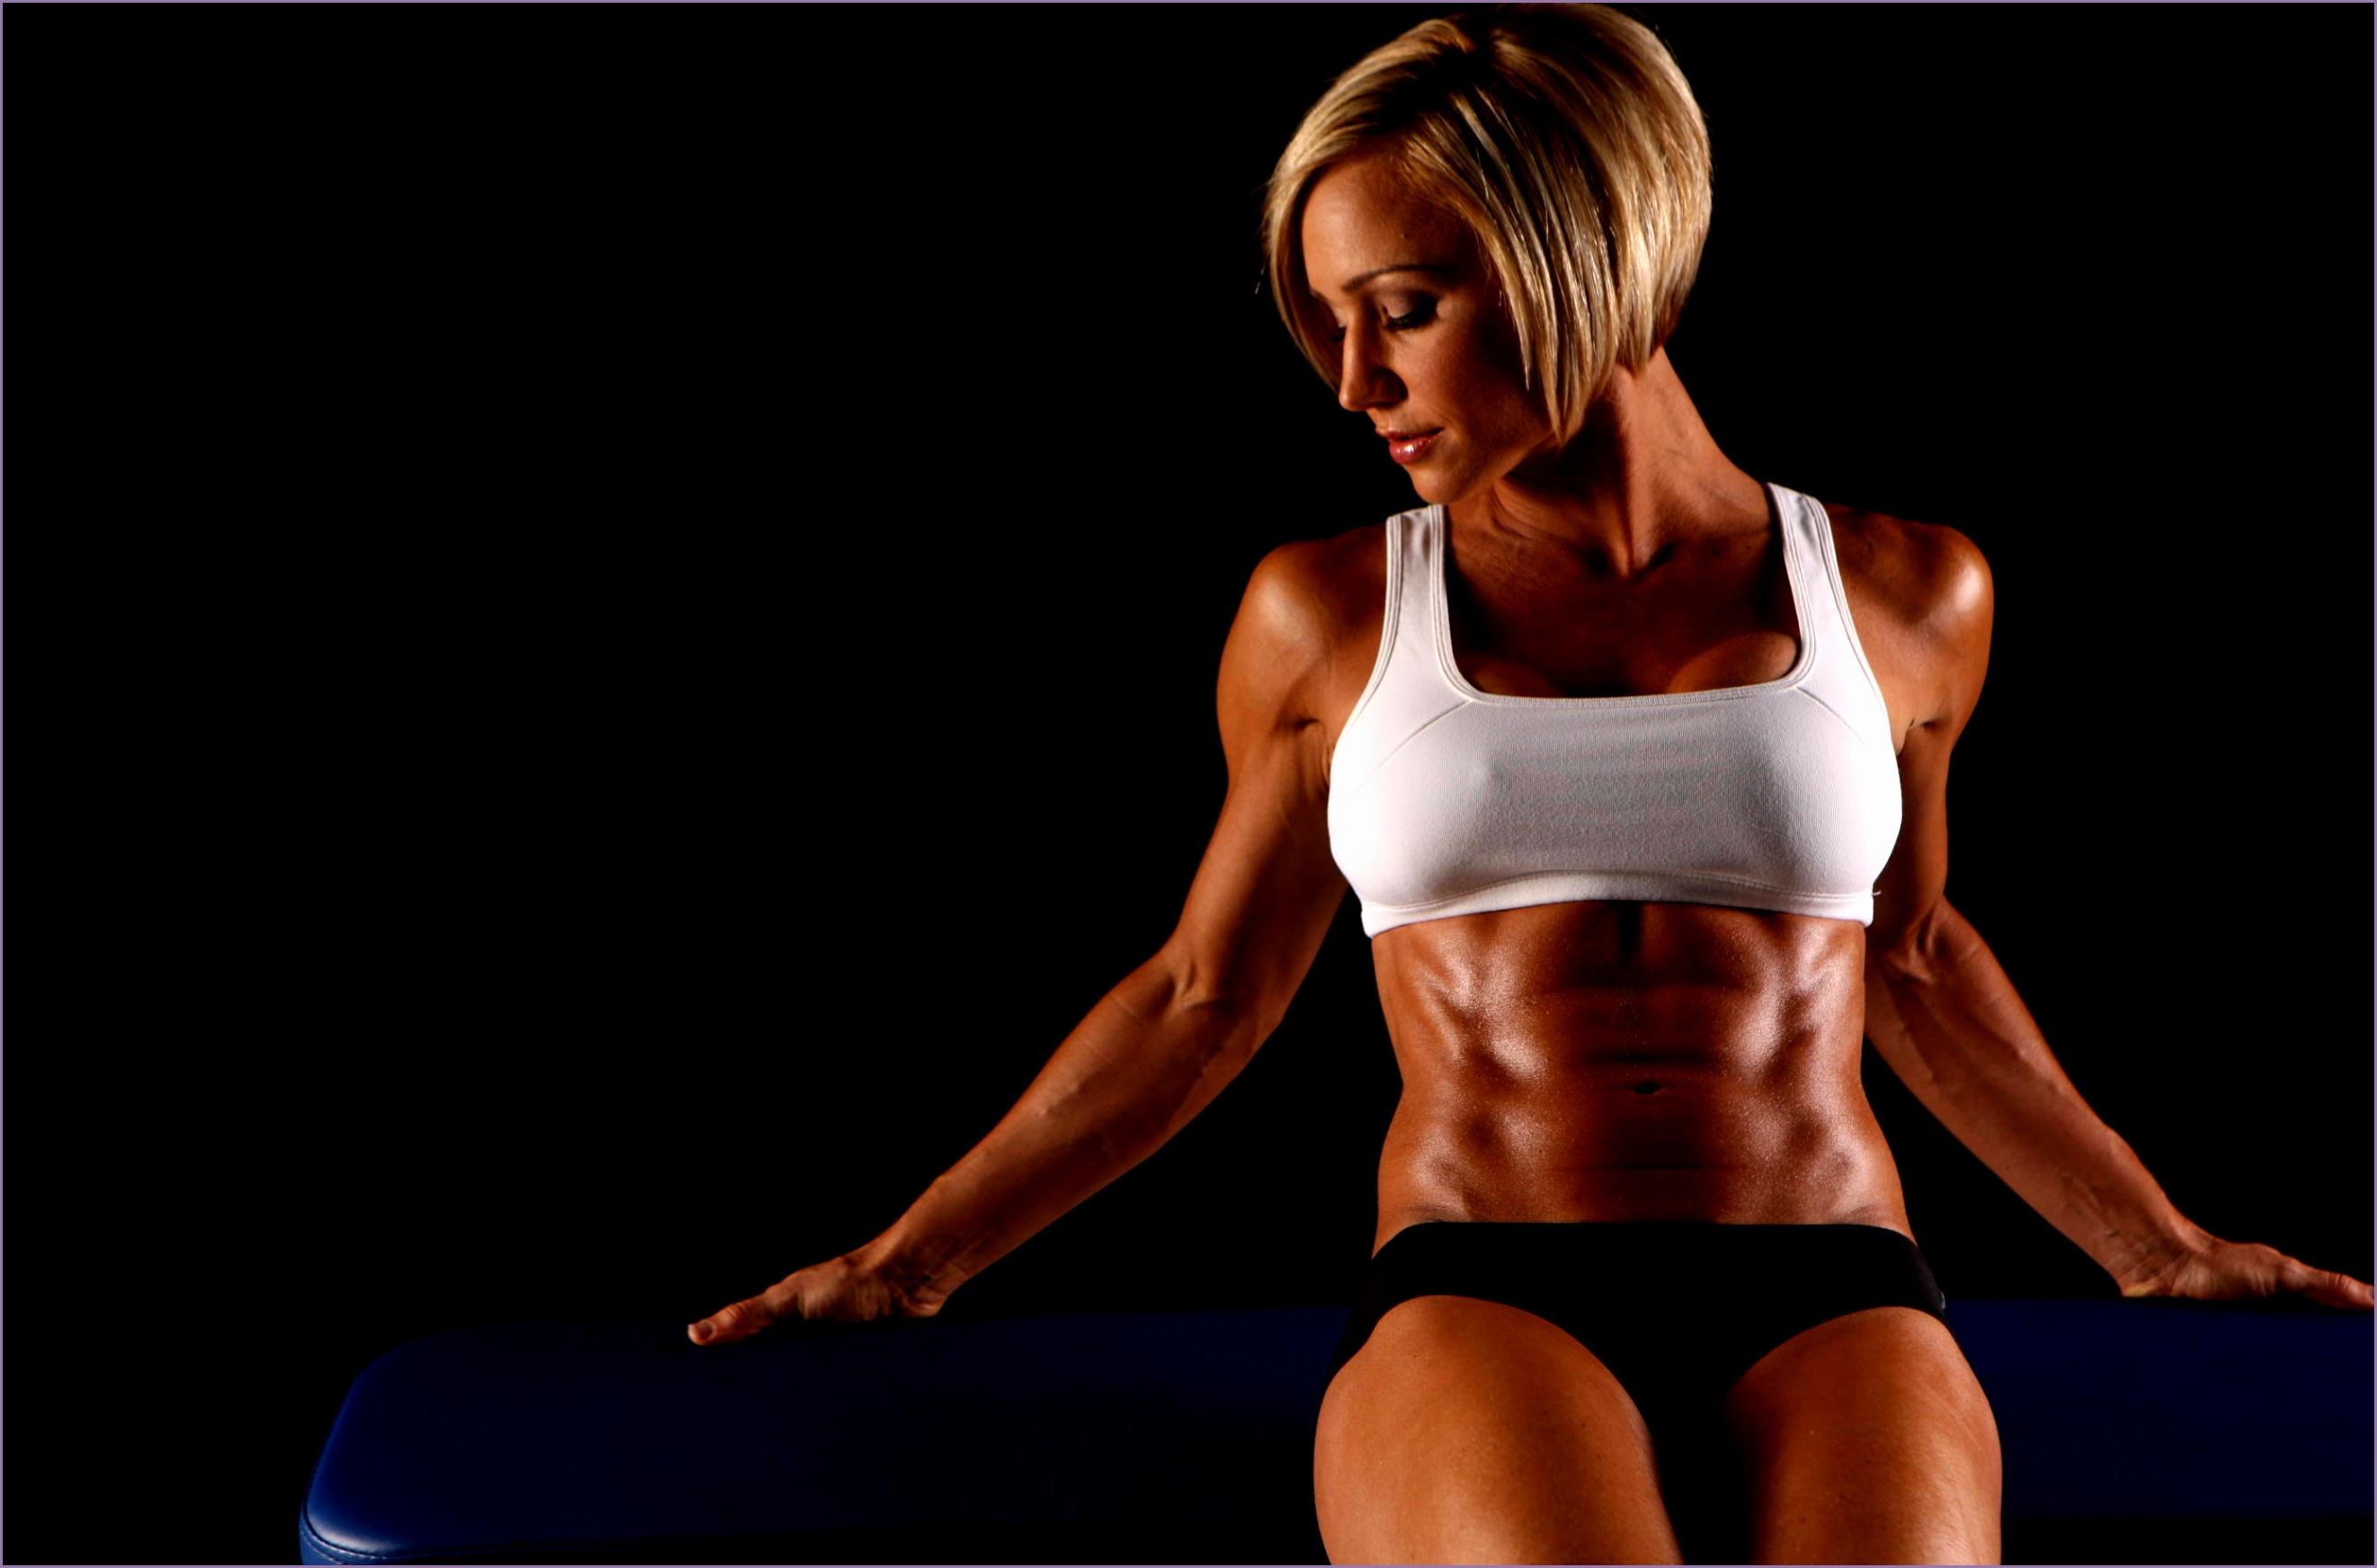 Jamie Eason body fitness stronger sport gim wallpaper